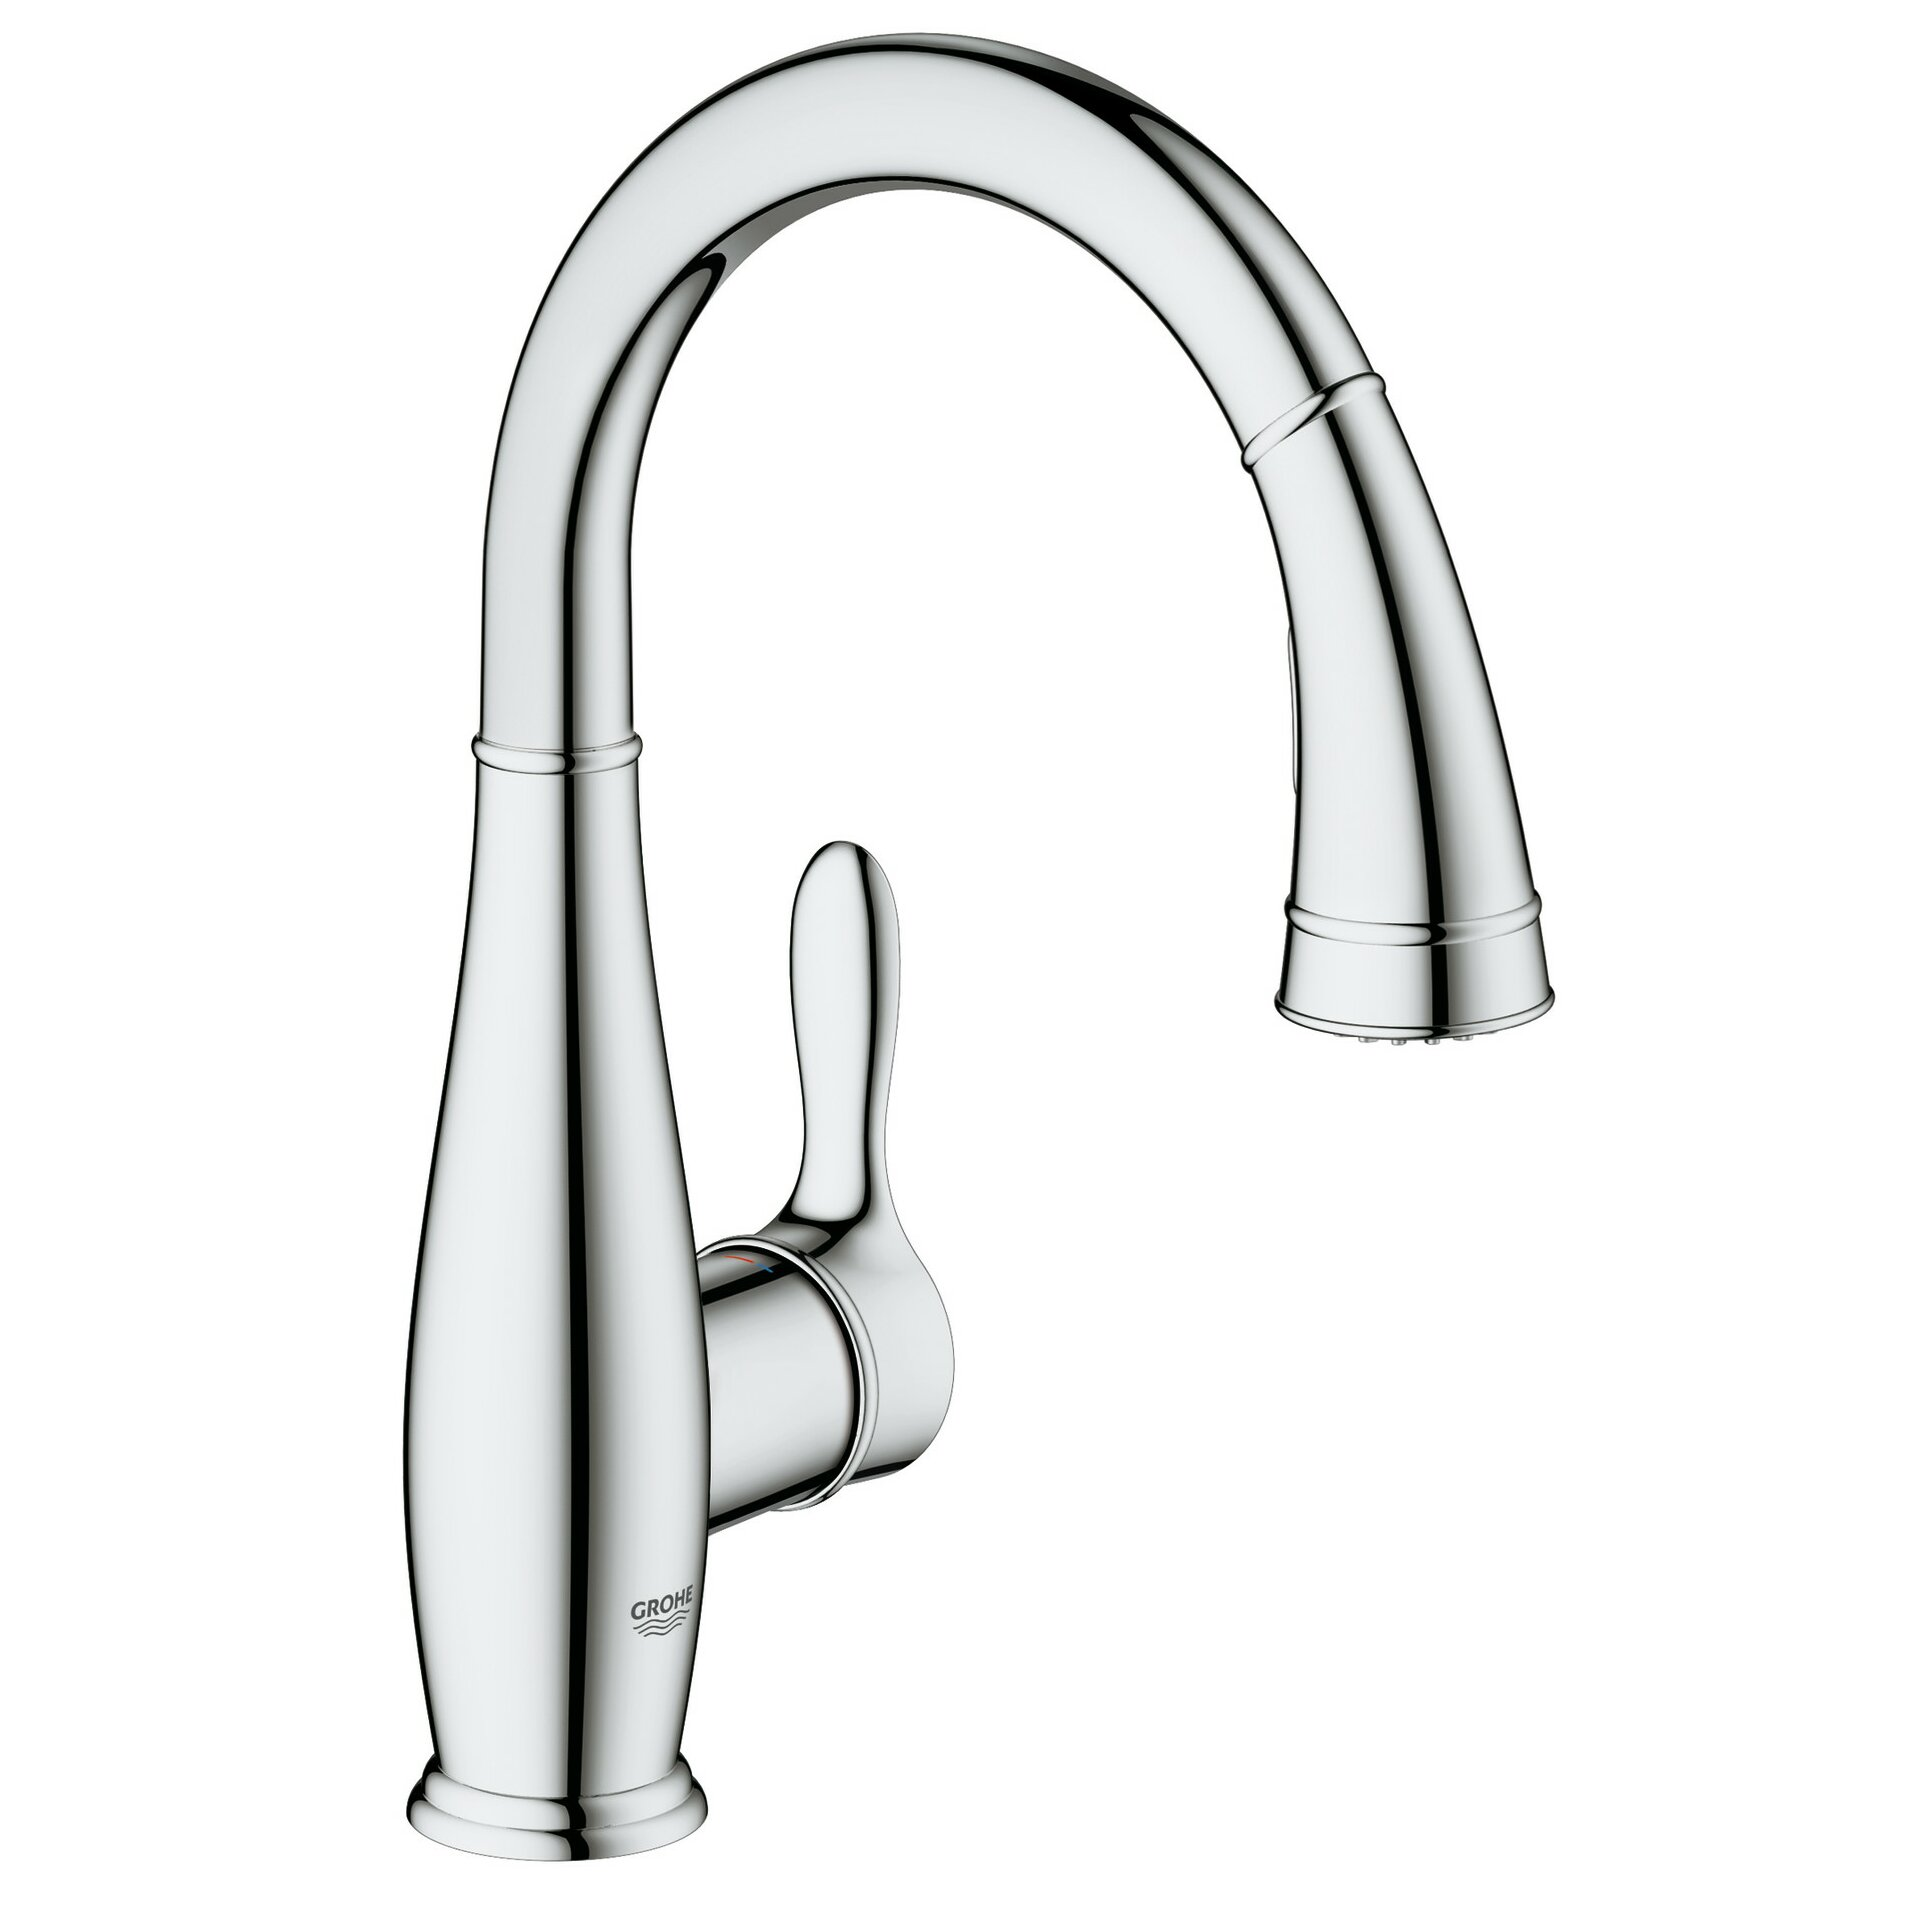 Grohe Parkfield Single Handle Deck Mount Kitchen Faucet with Dual Spray Pull Down